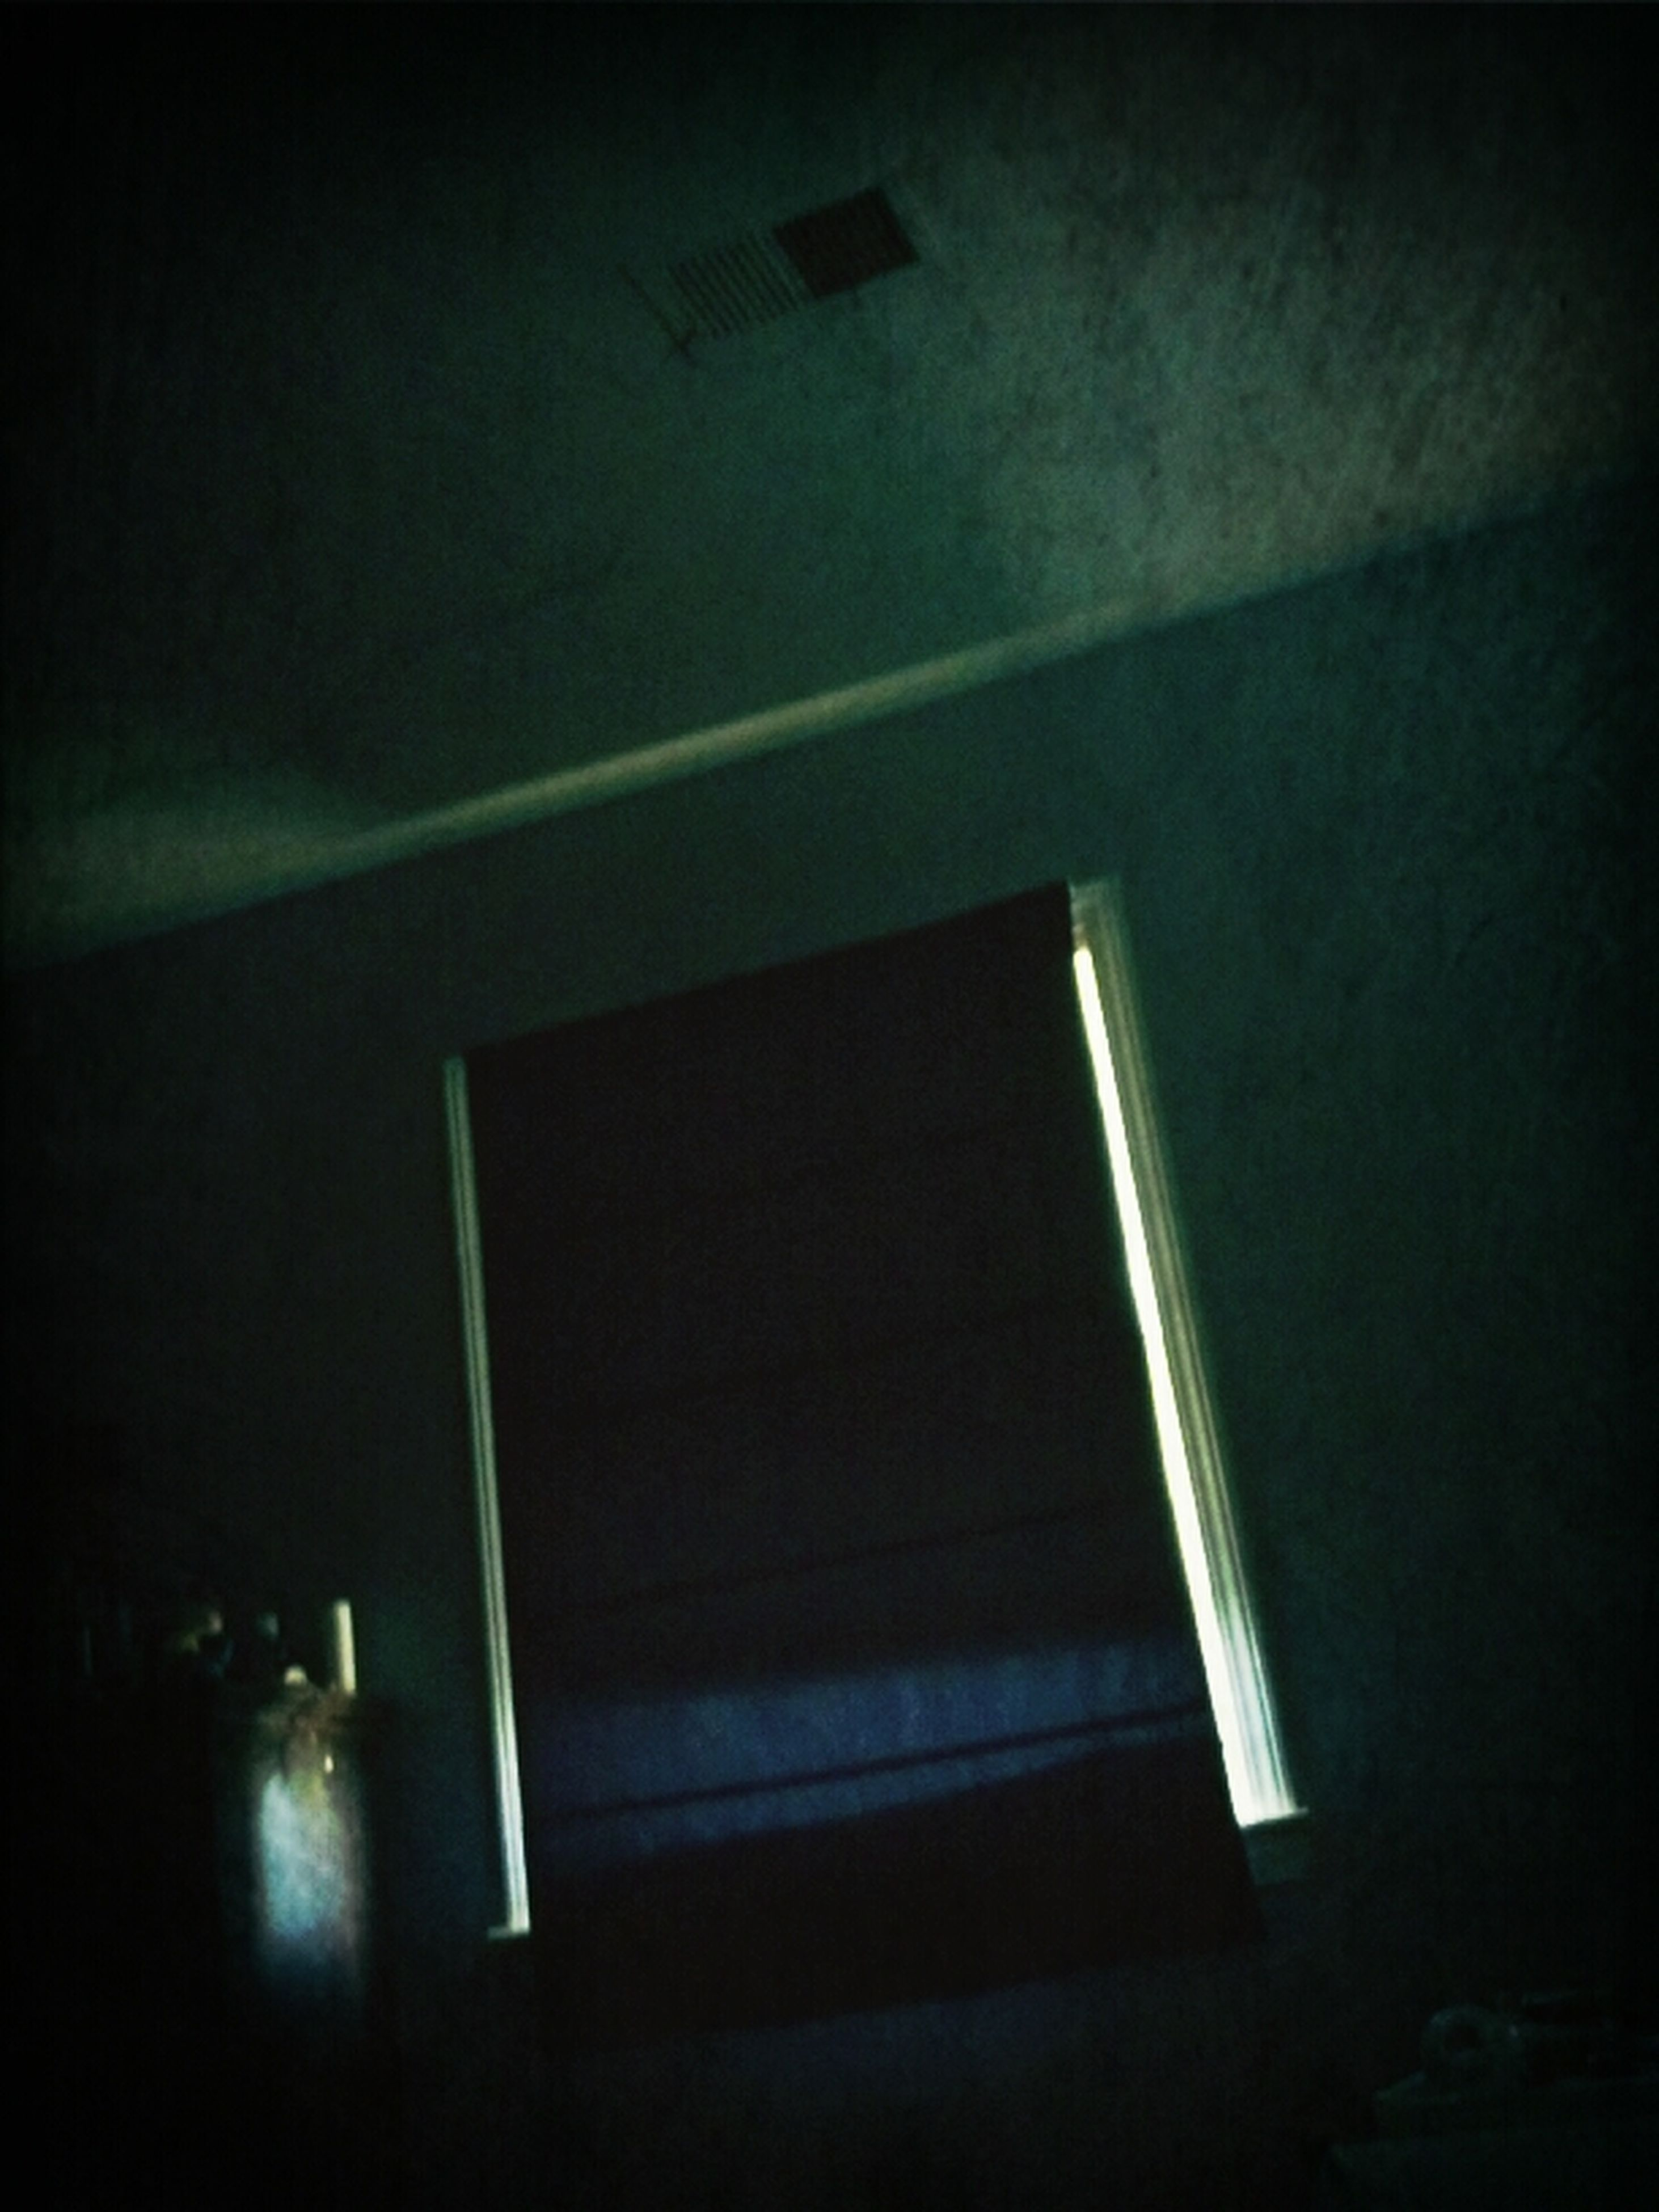 indoors, low angle view, illuminated, architecture, built structure, lighting equipment, window, wall - building feature, home interior, copy space, no people, wall, ceiling, dark, night, house, light - natural phenomenon, shadow, electric lamp, vignette